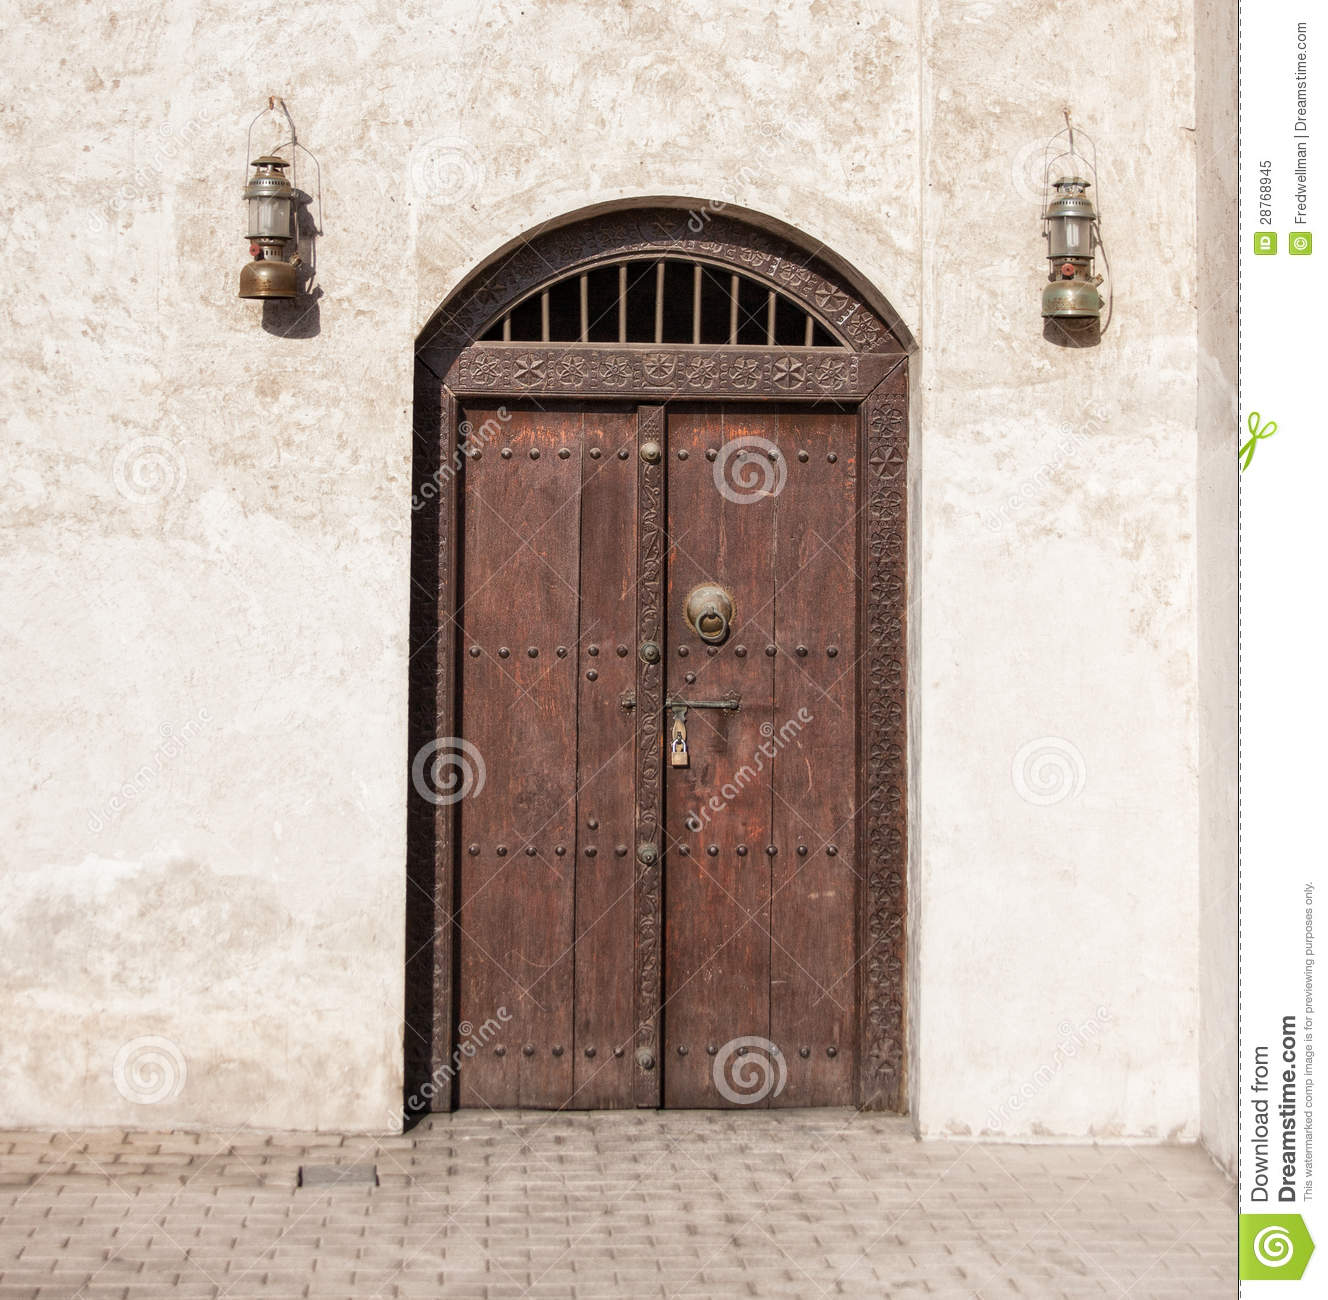 Arab door royalty free stock photo image 28768945 for United international decor bahrain